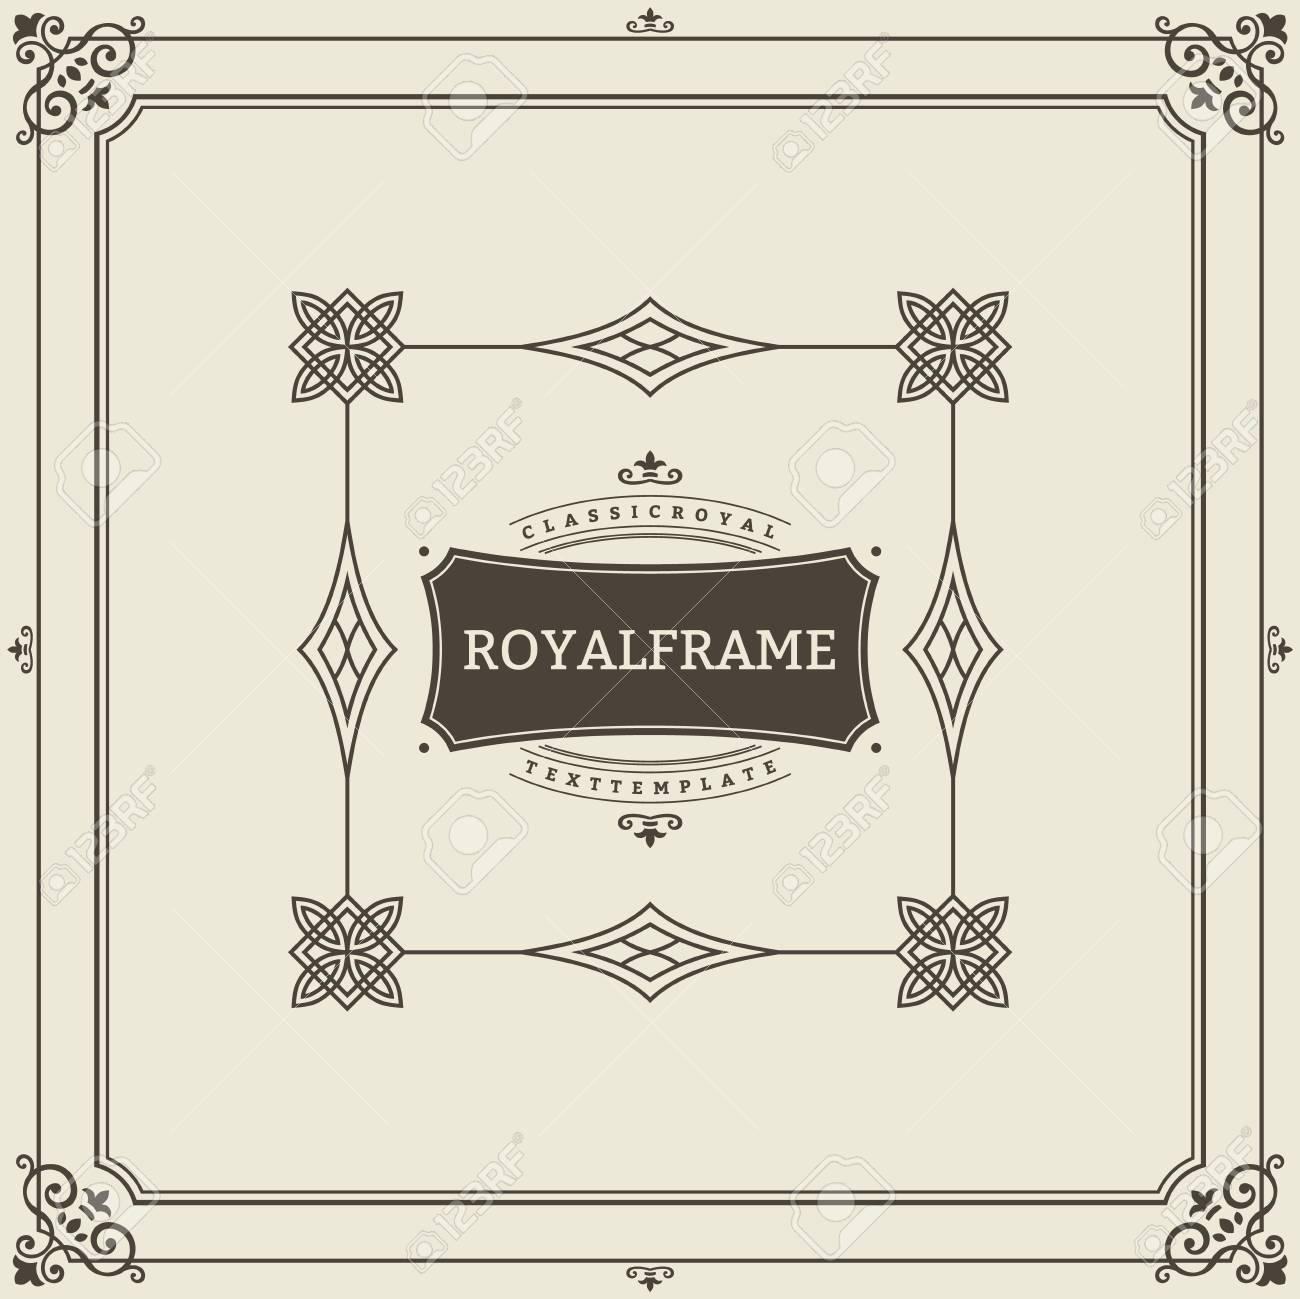 Vintage Ornament Greeting Card Vector Template. Retro Luxury Invitation, Royal Certificate. Flourishes frame. Vintage Background, Vintage Frame, Vintage Ornament, Ornaments Vector, Ornamental Frame. - 122122519